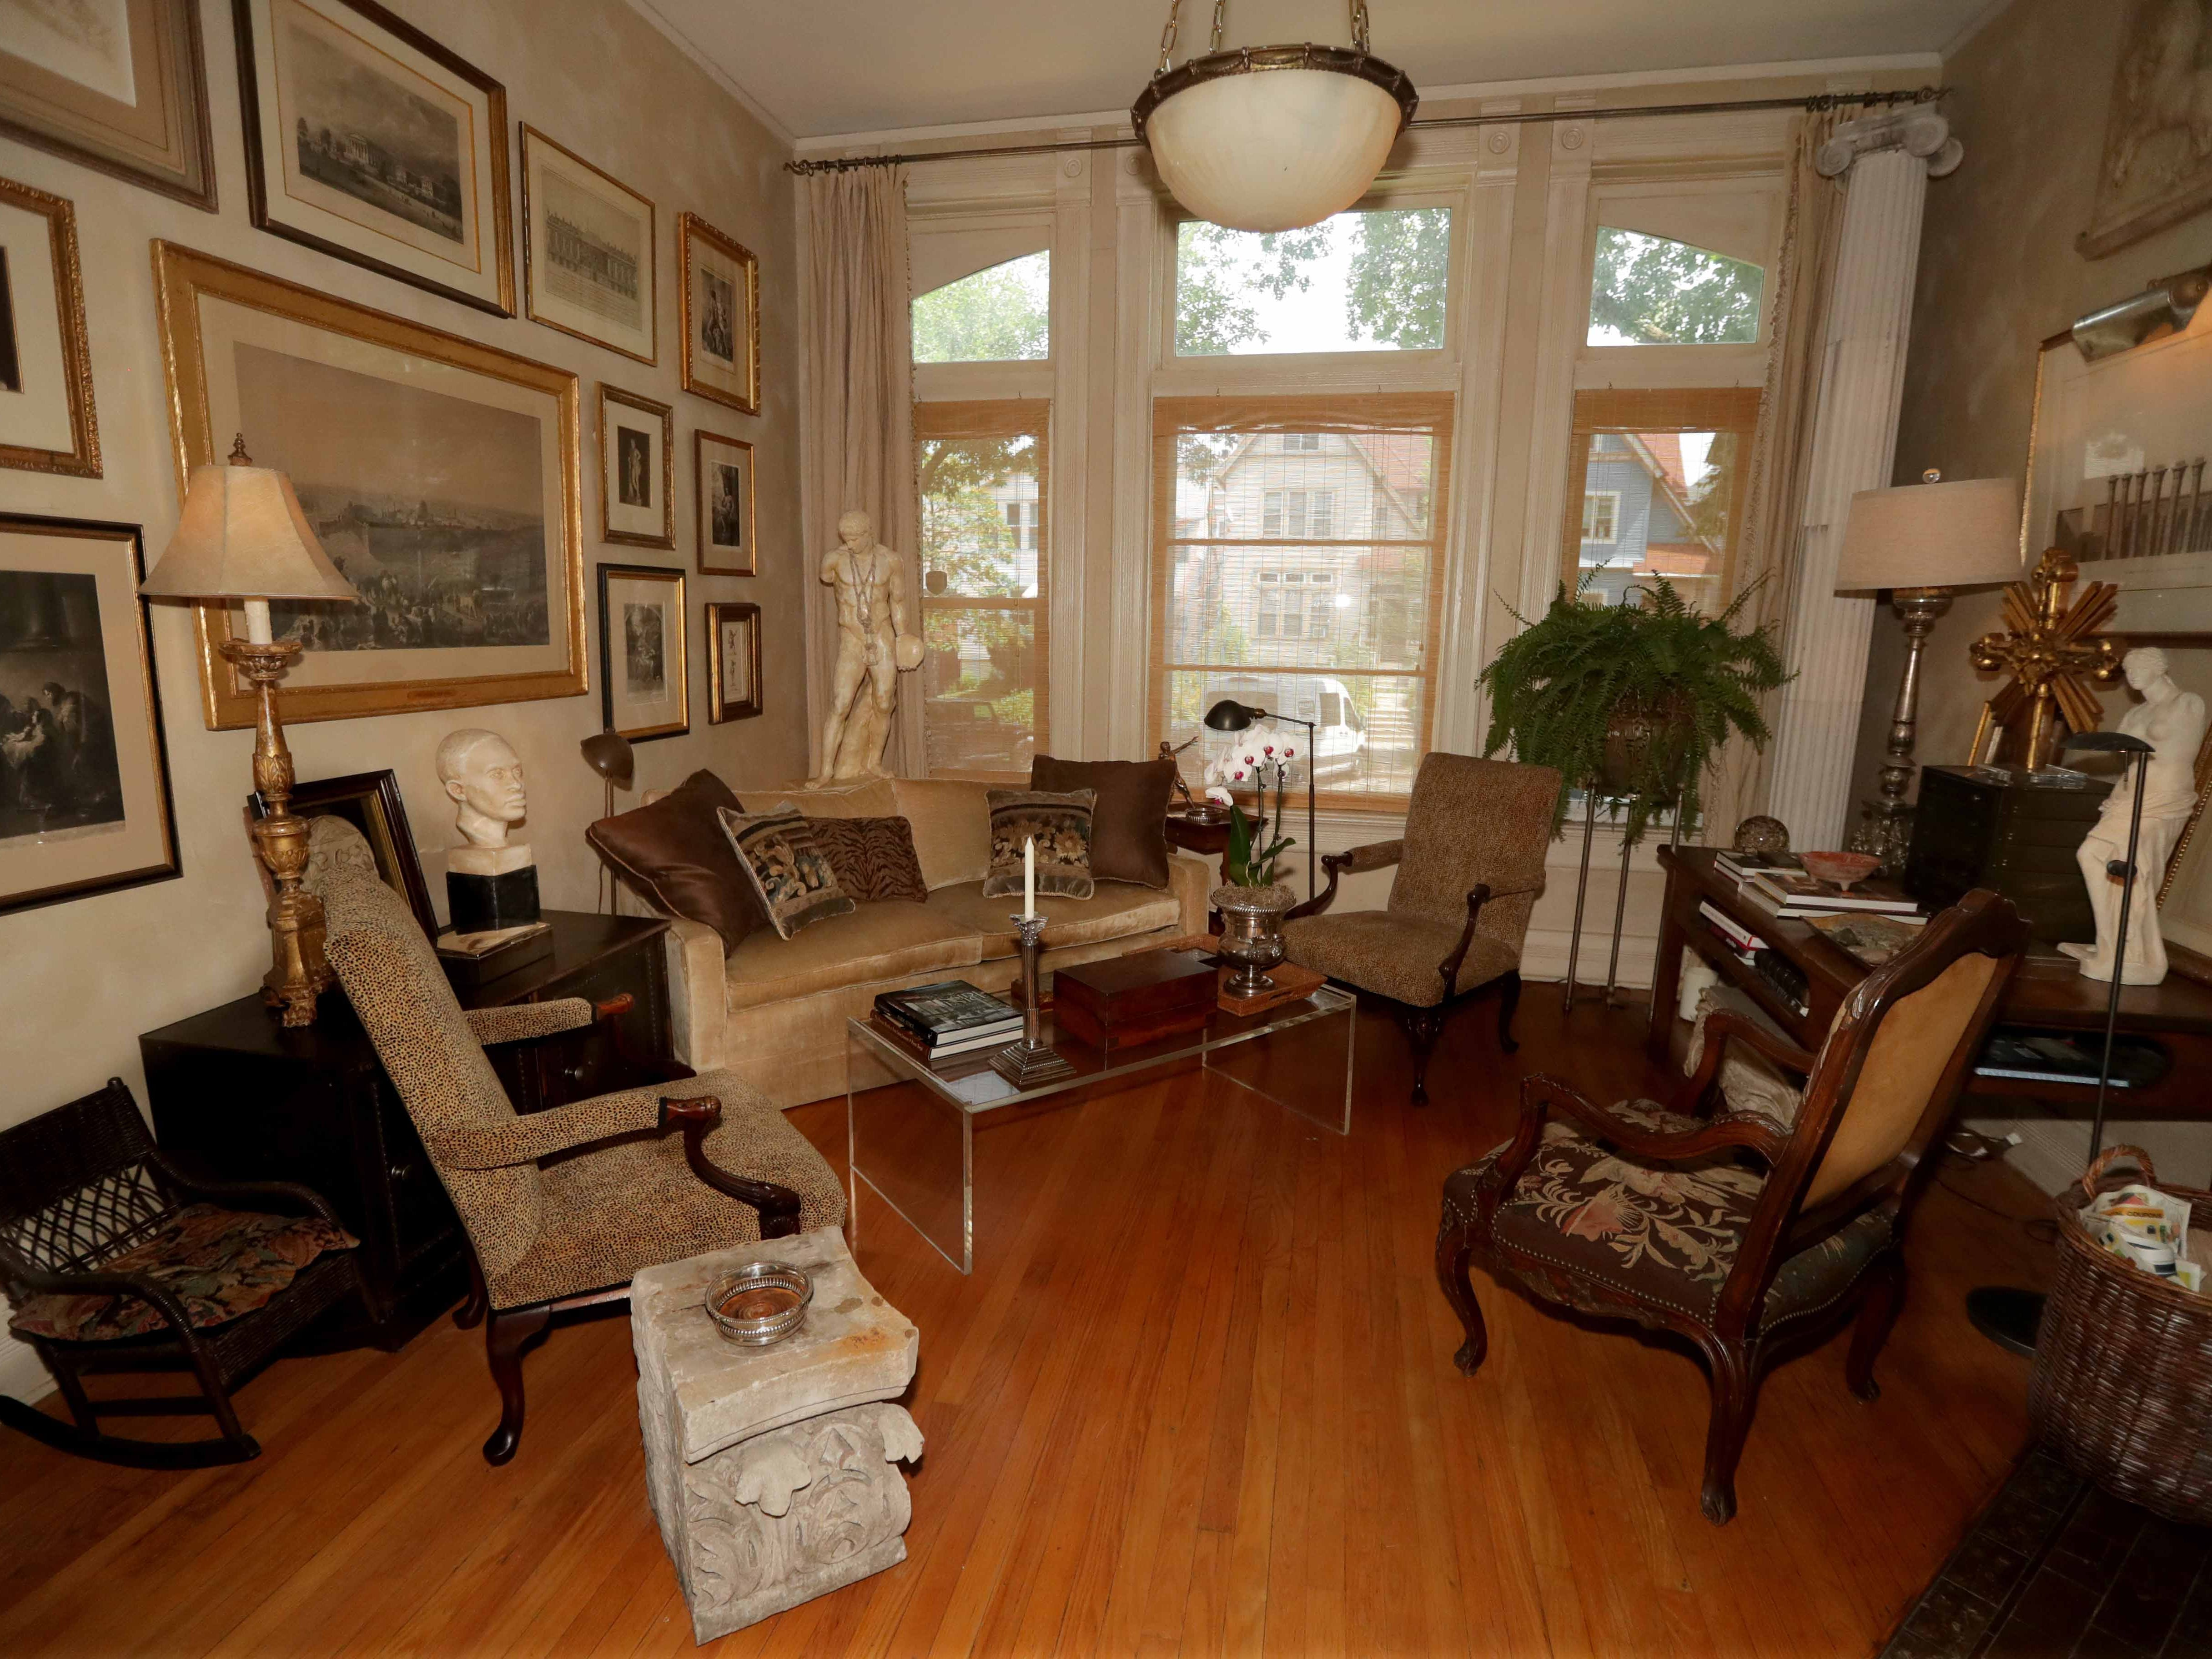 Just off the entry to the home is the front parlor with large windows facing the street.